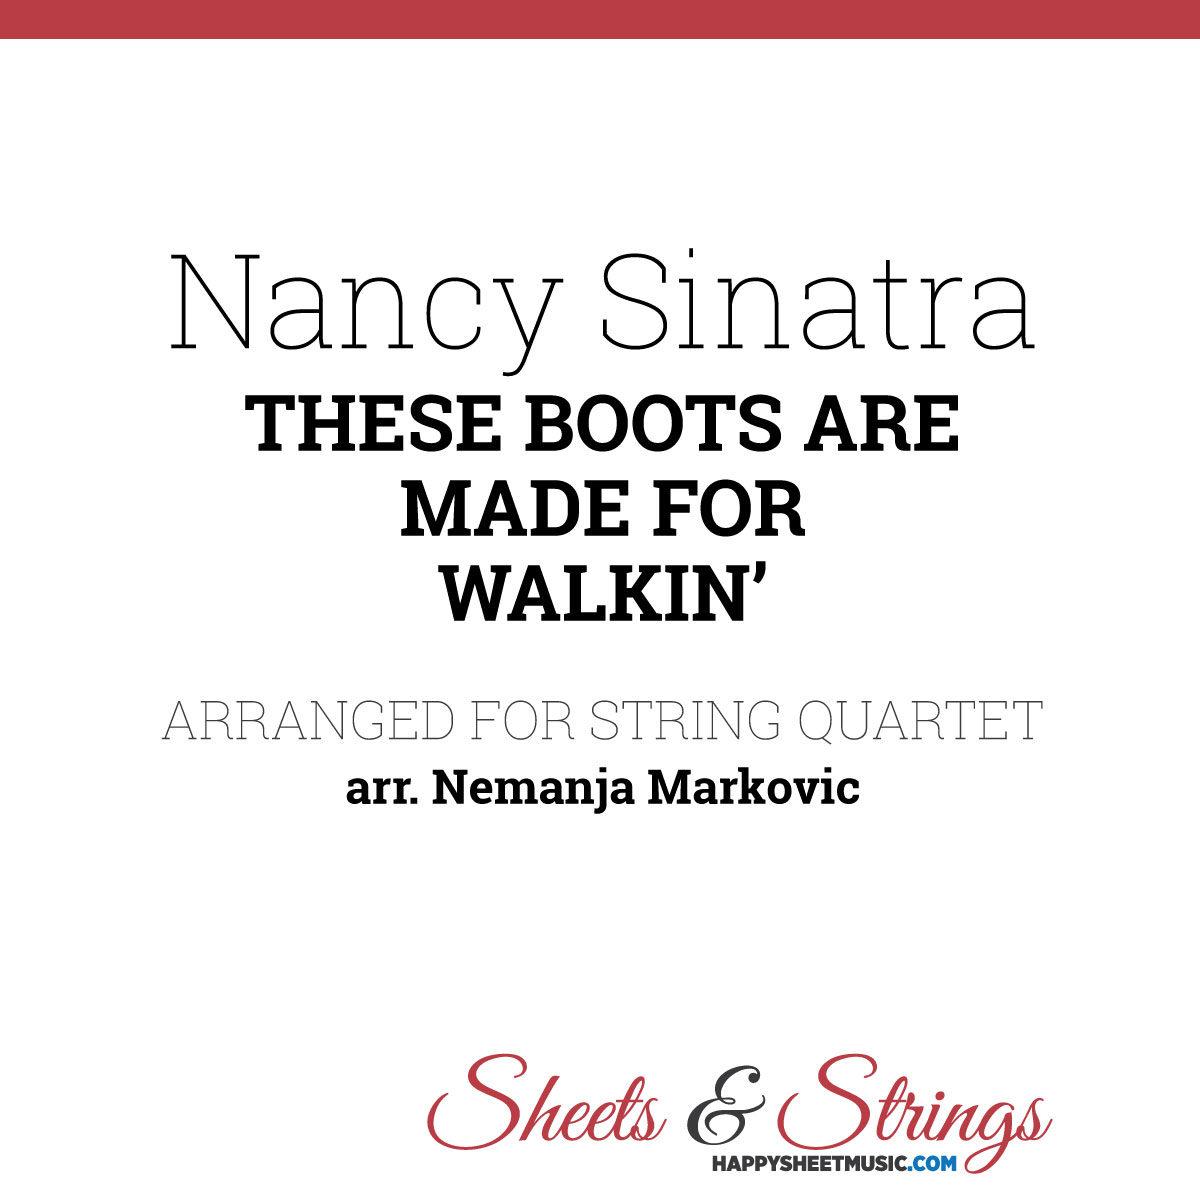 Nancy Sinatra - These Boots Are Made For Walkin' - Sheet Music for String Quartet - Music Arrangement for String Quartet